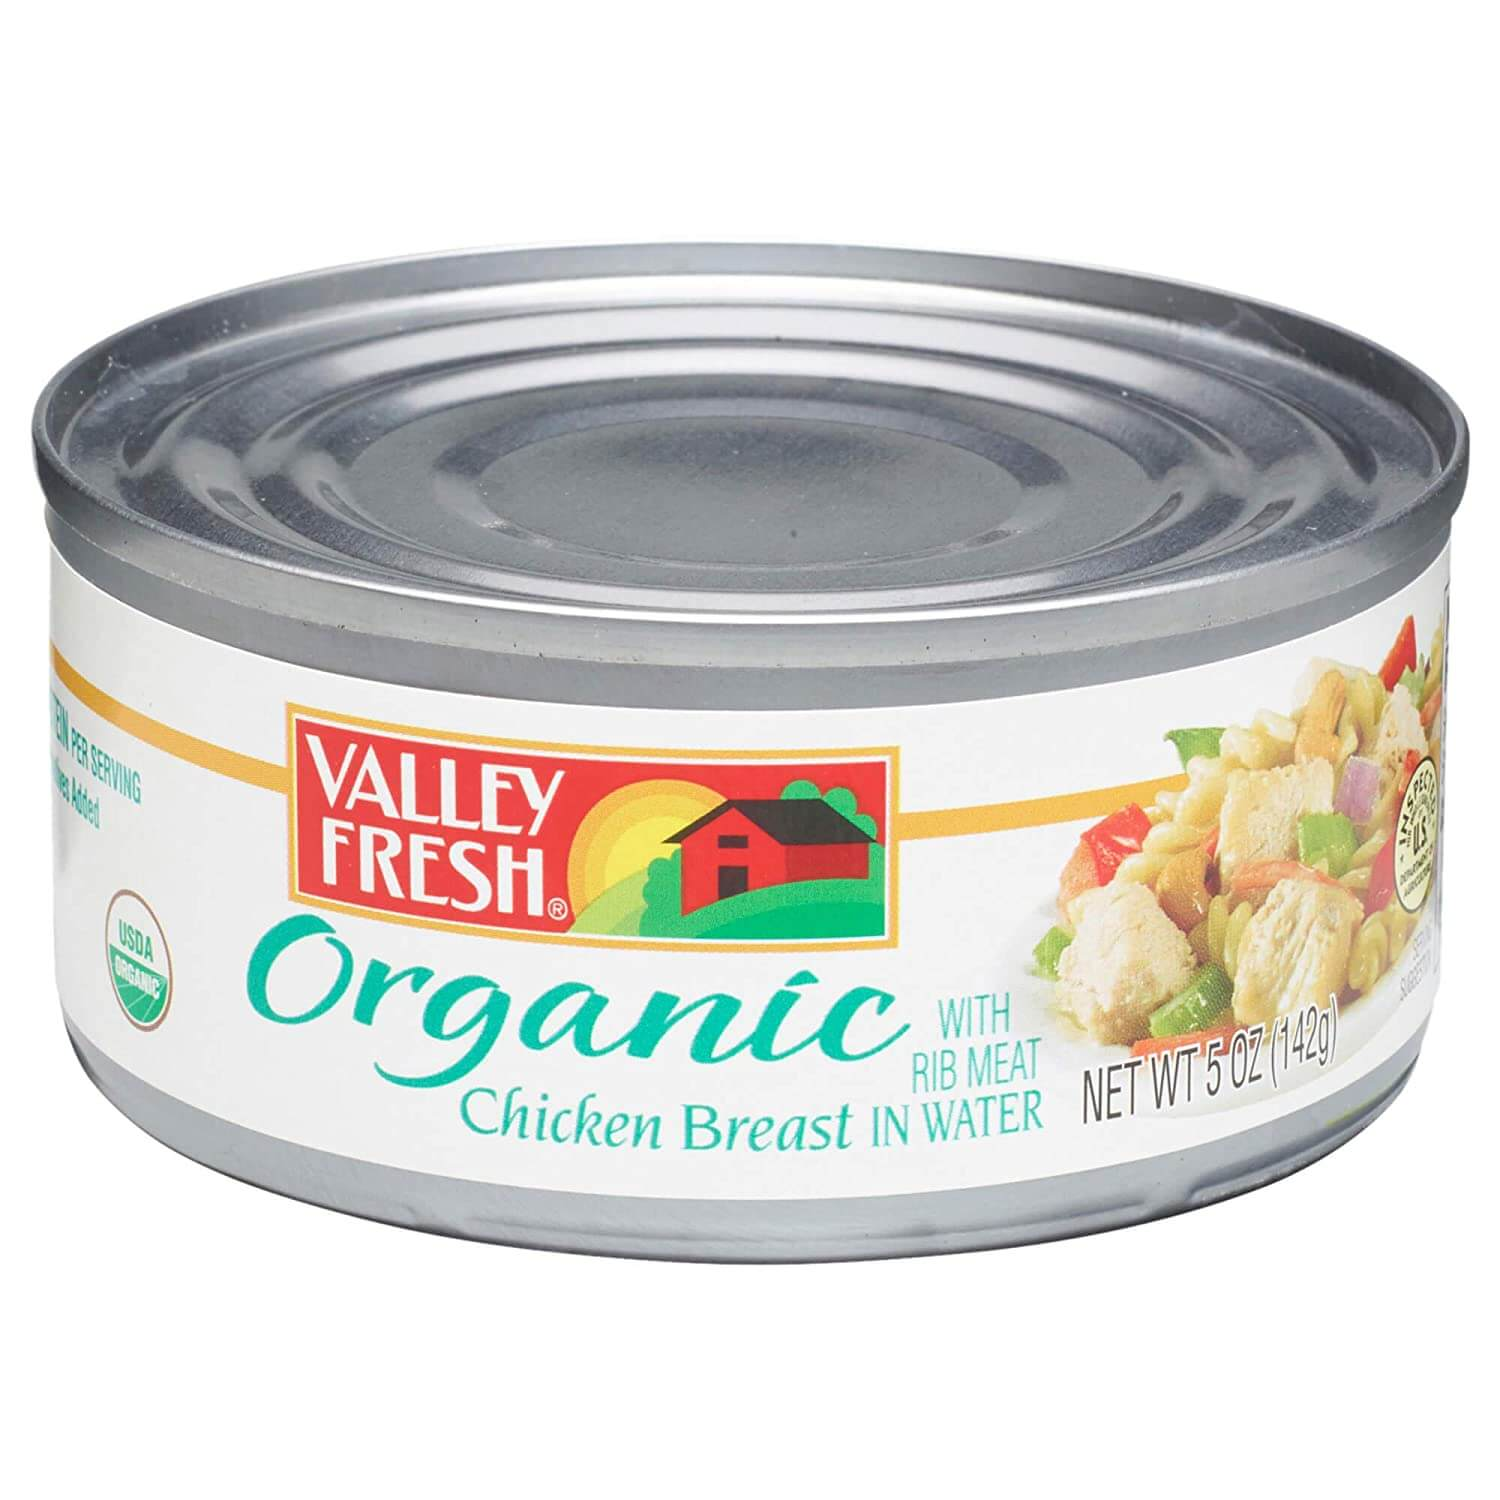 Valley Fresh Organic Canned Chicken Breast with Rib Meat in Water